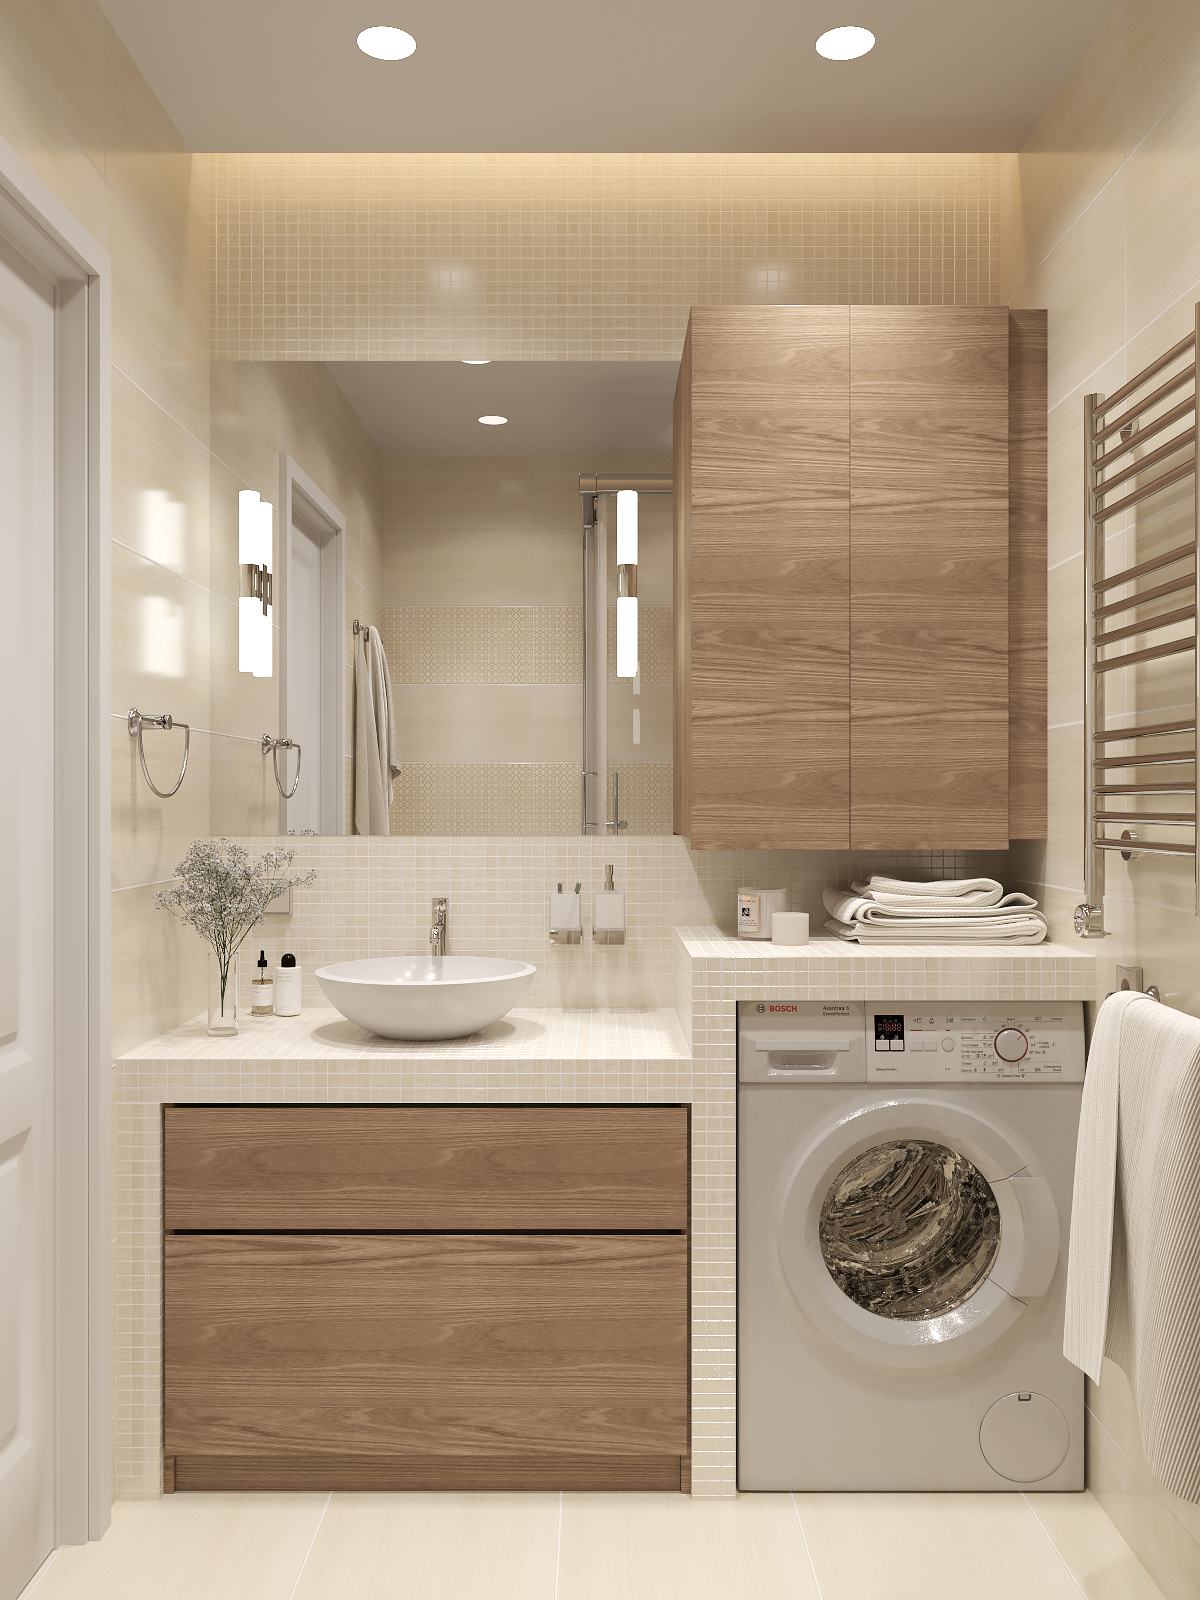 Very Neat Bathroom Layout With The Washing Machine Washing Machine Is Exposed But Neatly Tucked Away